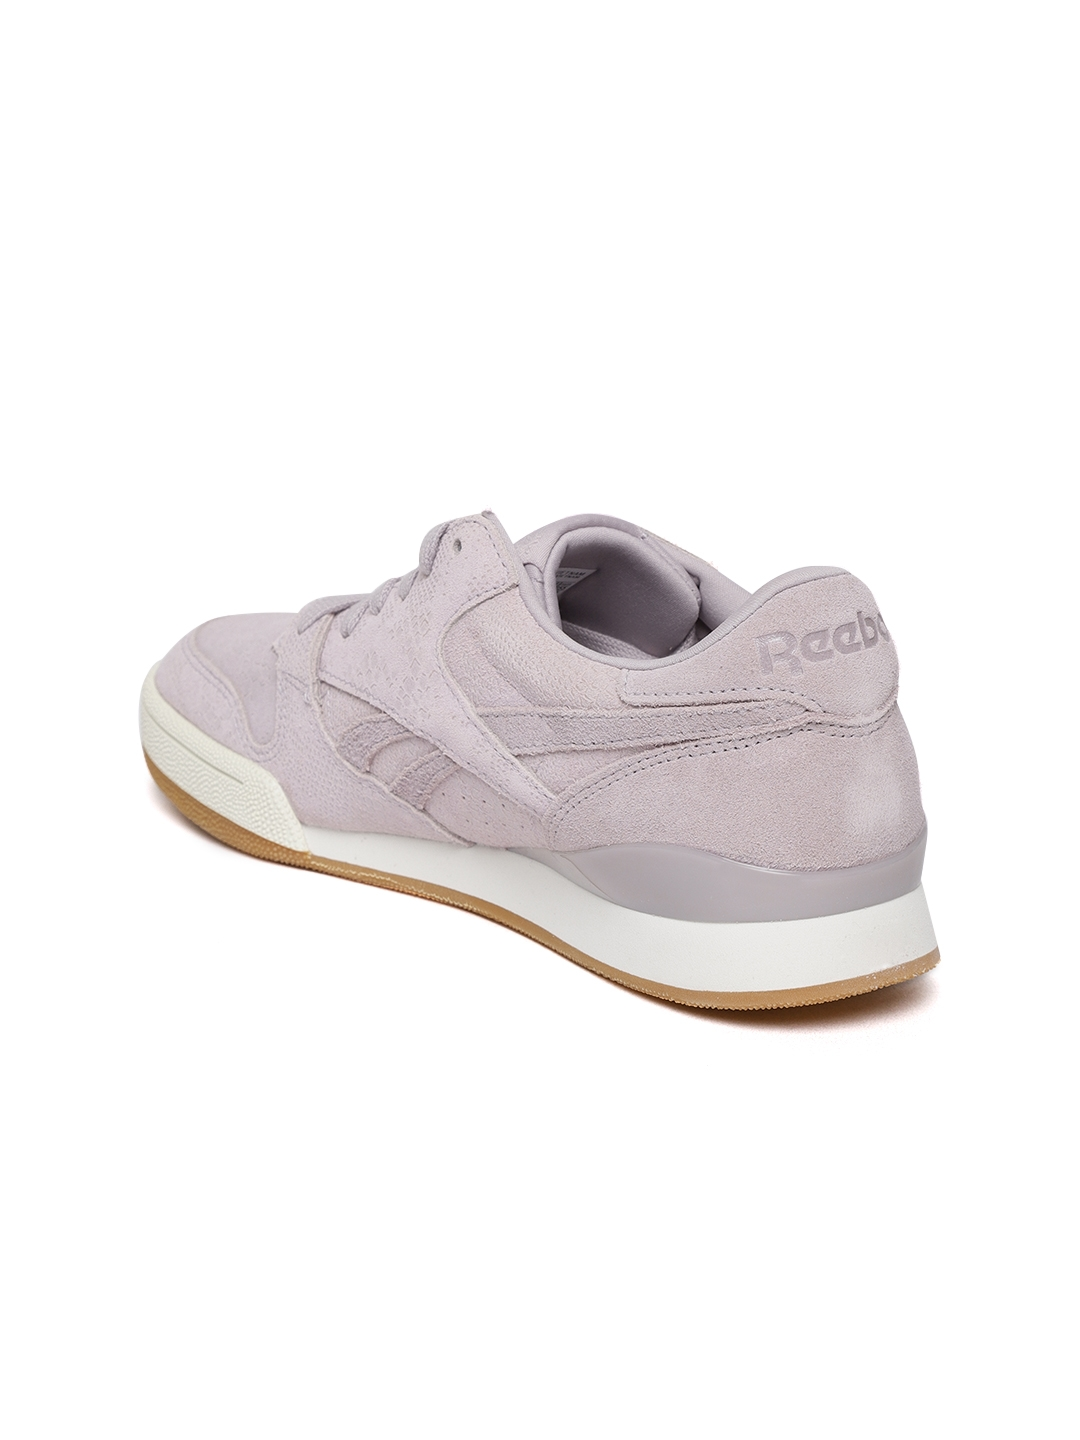 f6d28ab4cce8e3 Reebok Classic Women Lavender PHASE 1 PRO Snakeskin Texture Leather Sneakers